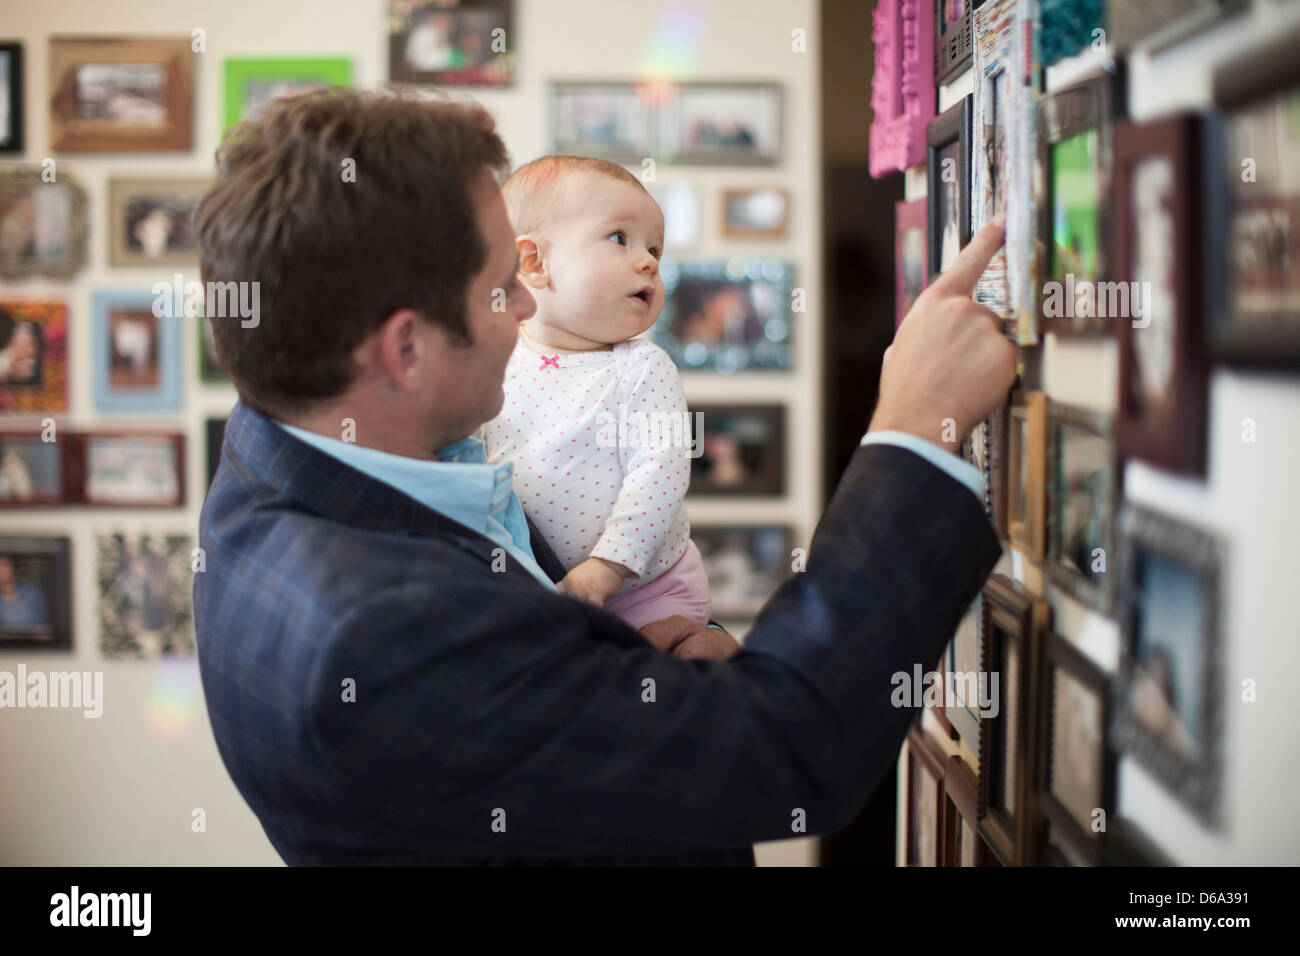 Businessman and baby looking at pictures - Stock Image